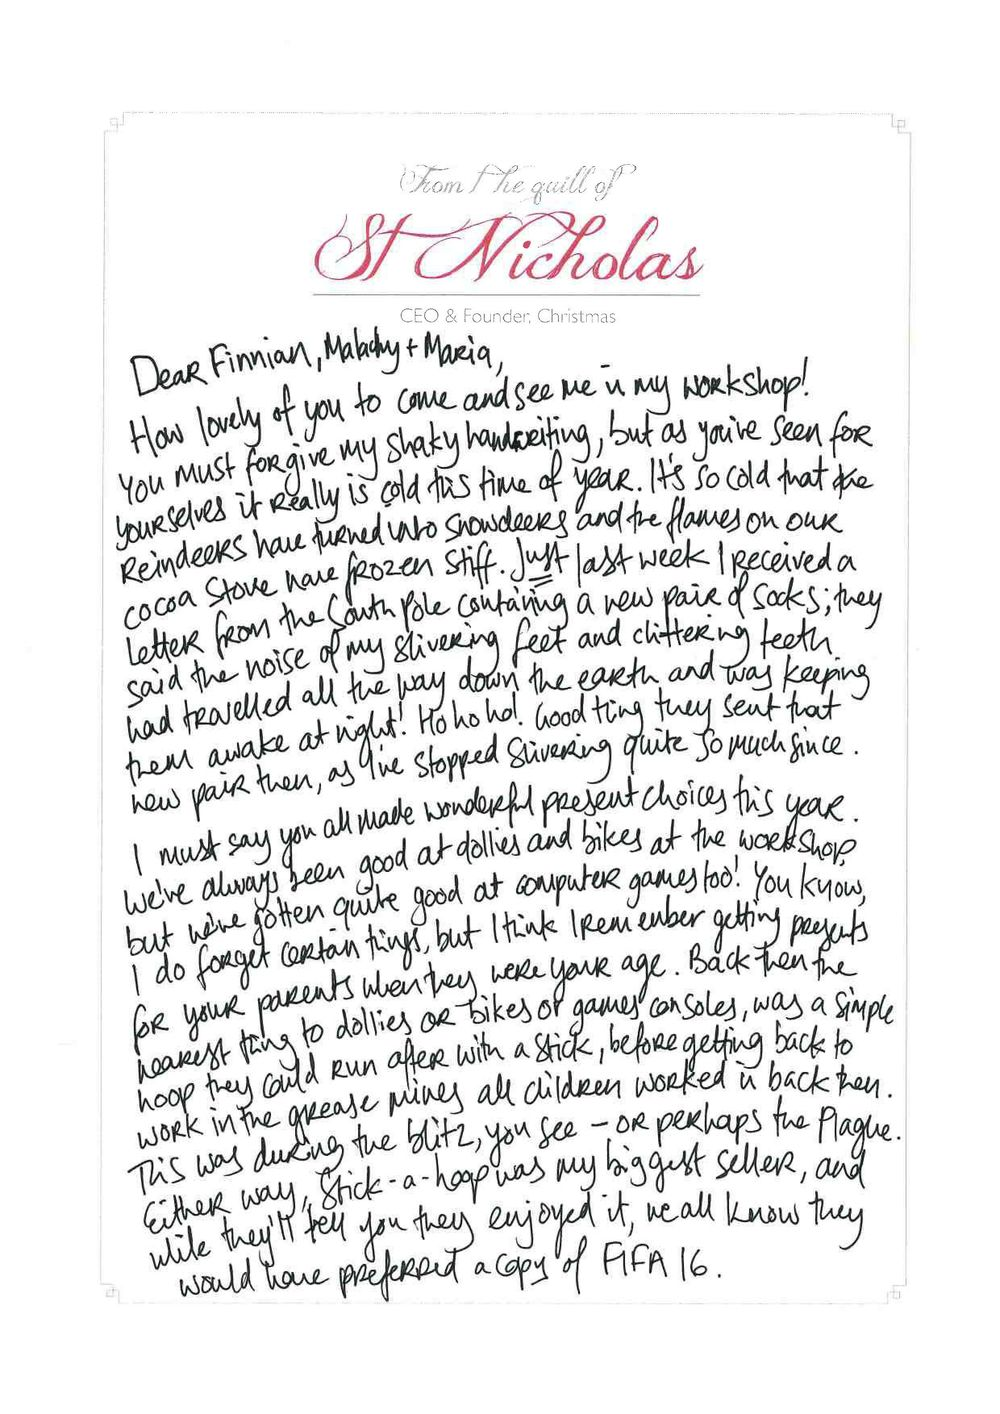 Santa letters shocko i got my siblings to send me photos of their letters to santa before they went up the chimney or what have you so i had idea of what they were expecting spiritdancerdesigns